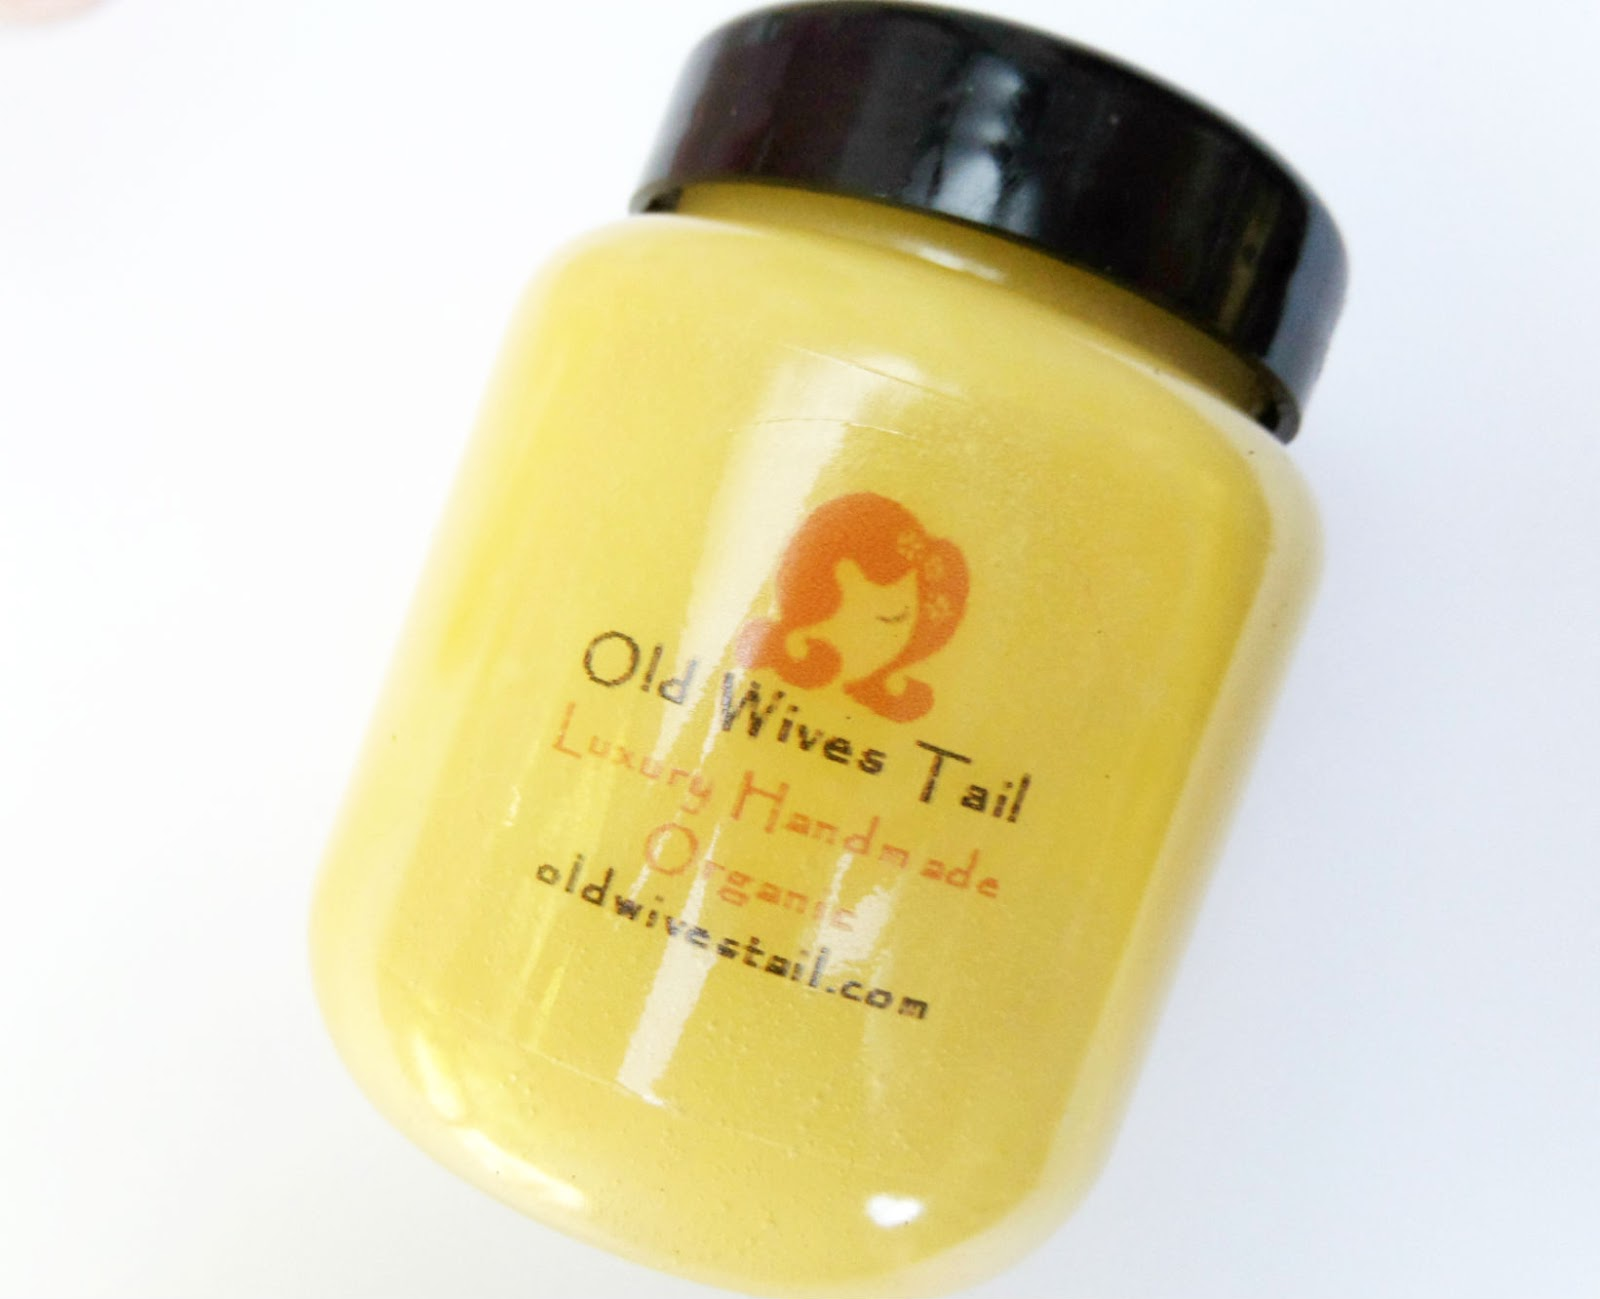 Old Wives Tail Hair Rosemary & Argan Oil Treatment